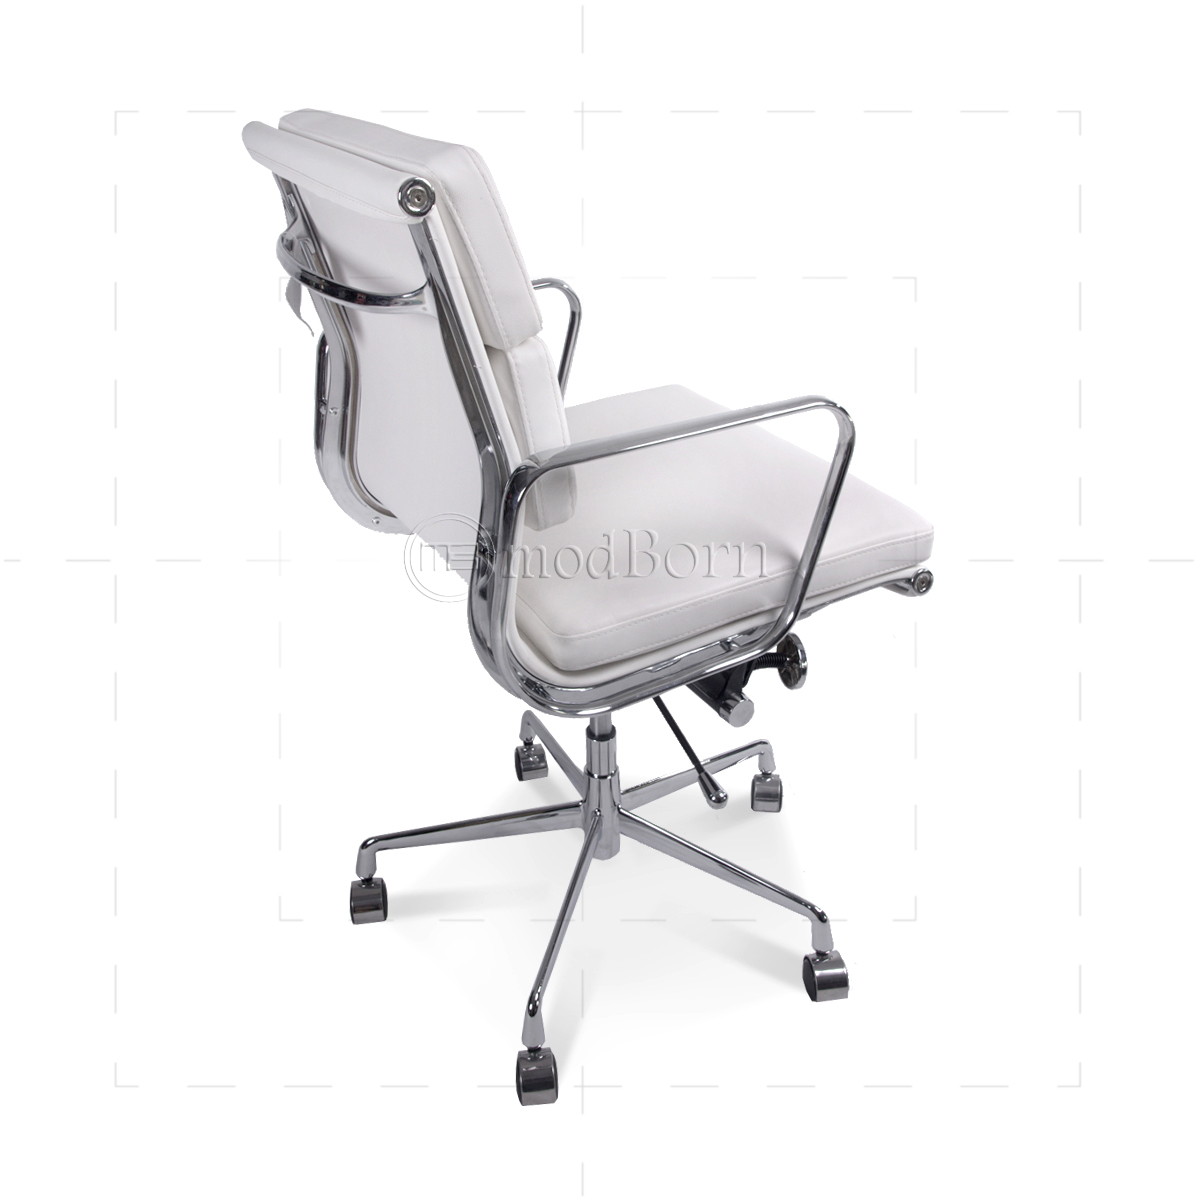 ea217 eames style office chair low back soft pad white leather replica. Black Bedroom Furniture Sets. Home Design Ideas